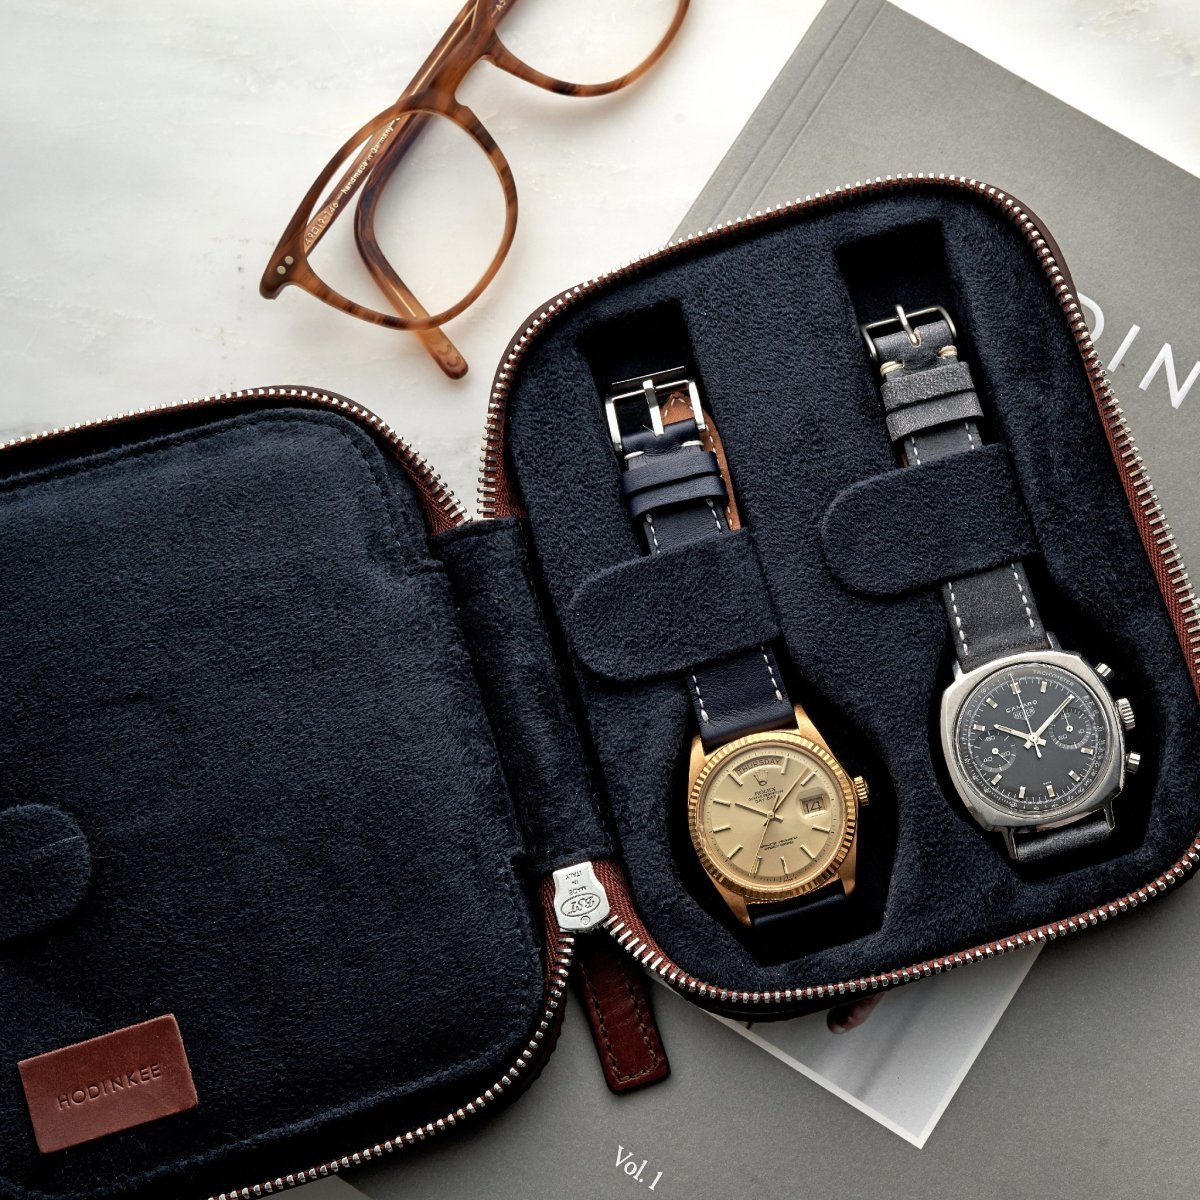 Hodinkee moulded watch cases